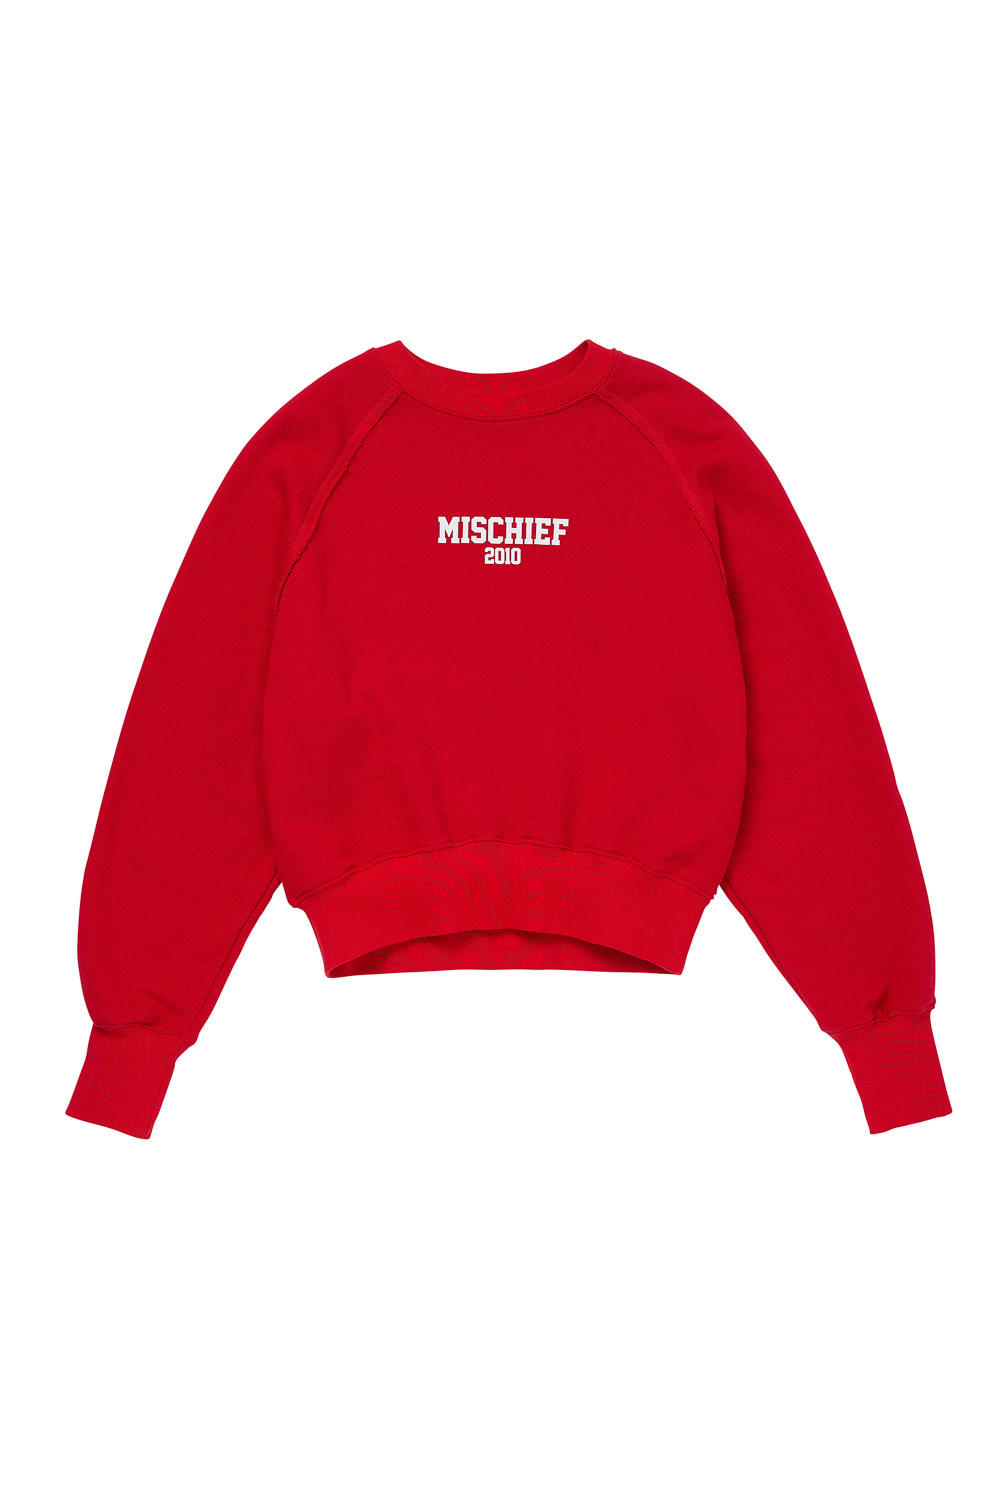 MSCHF 2010 CROPPED CREWNECK_red